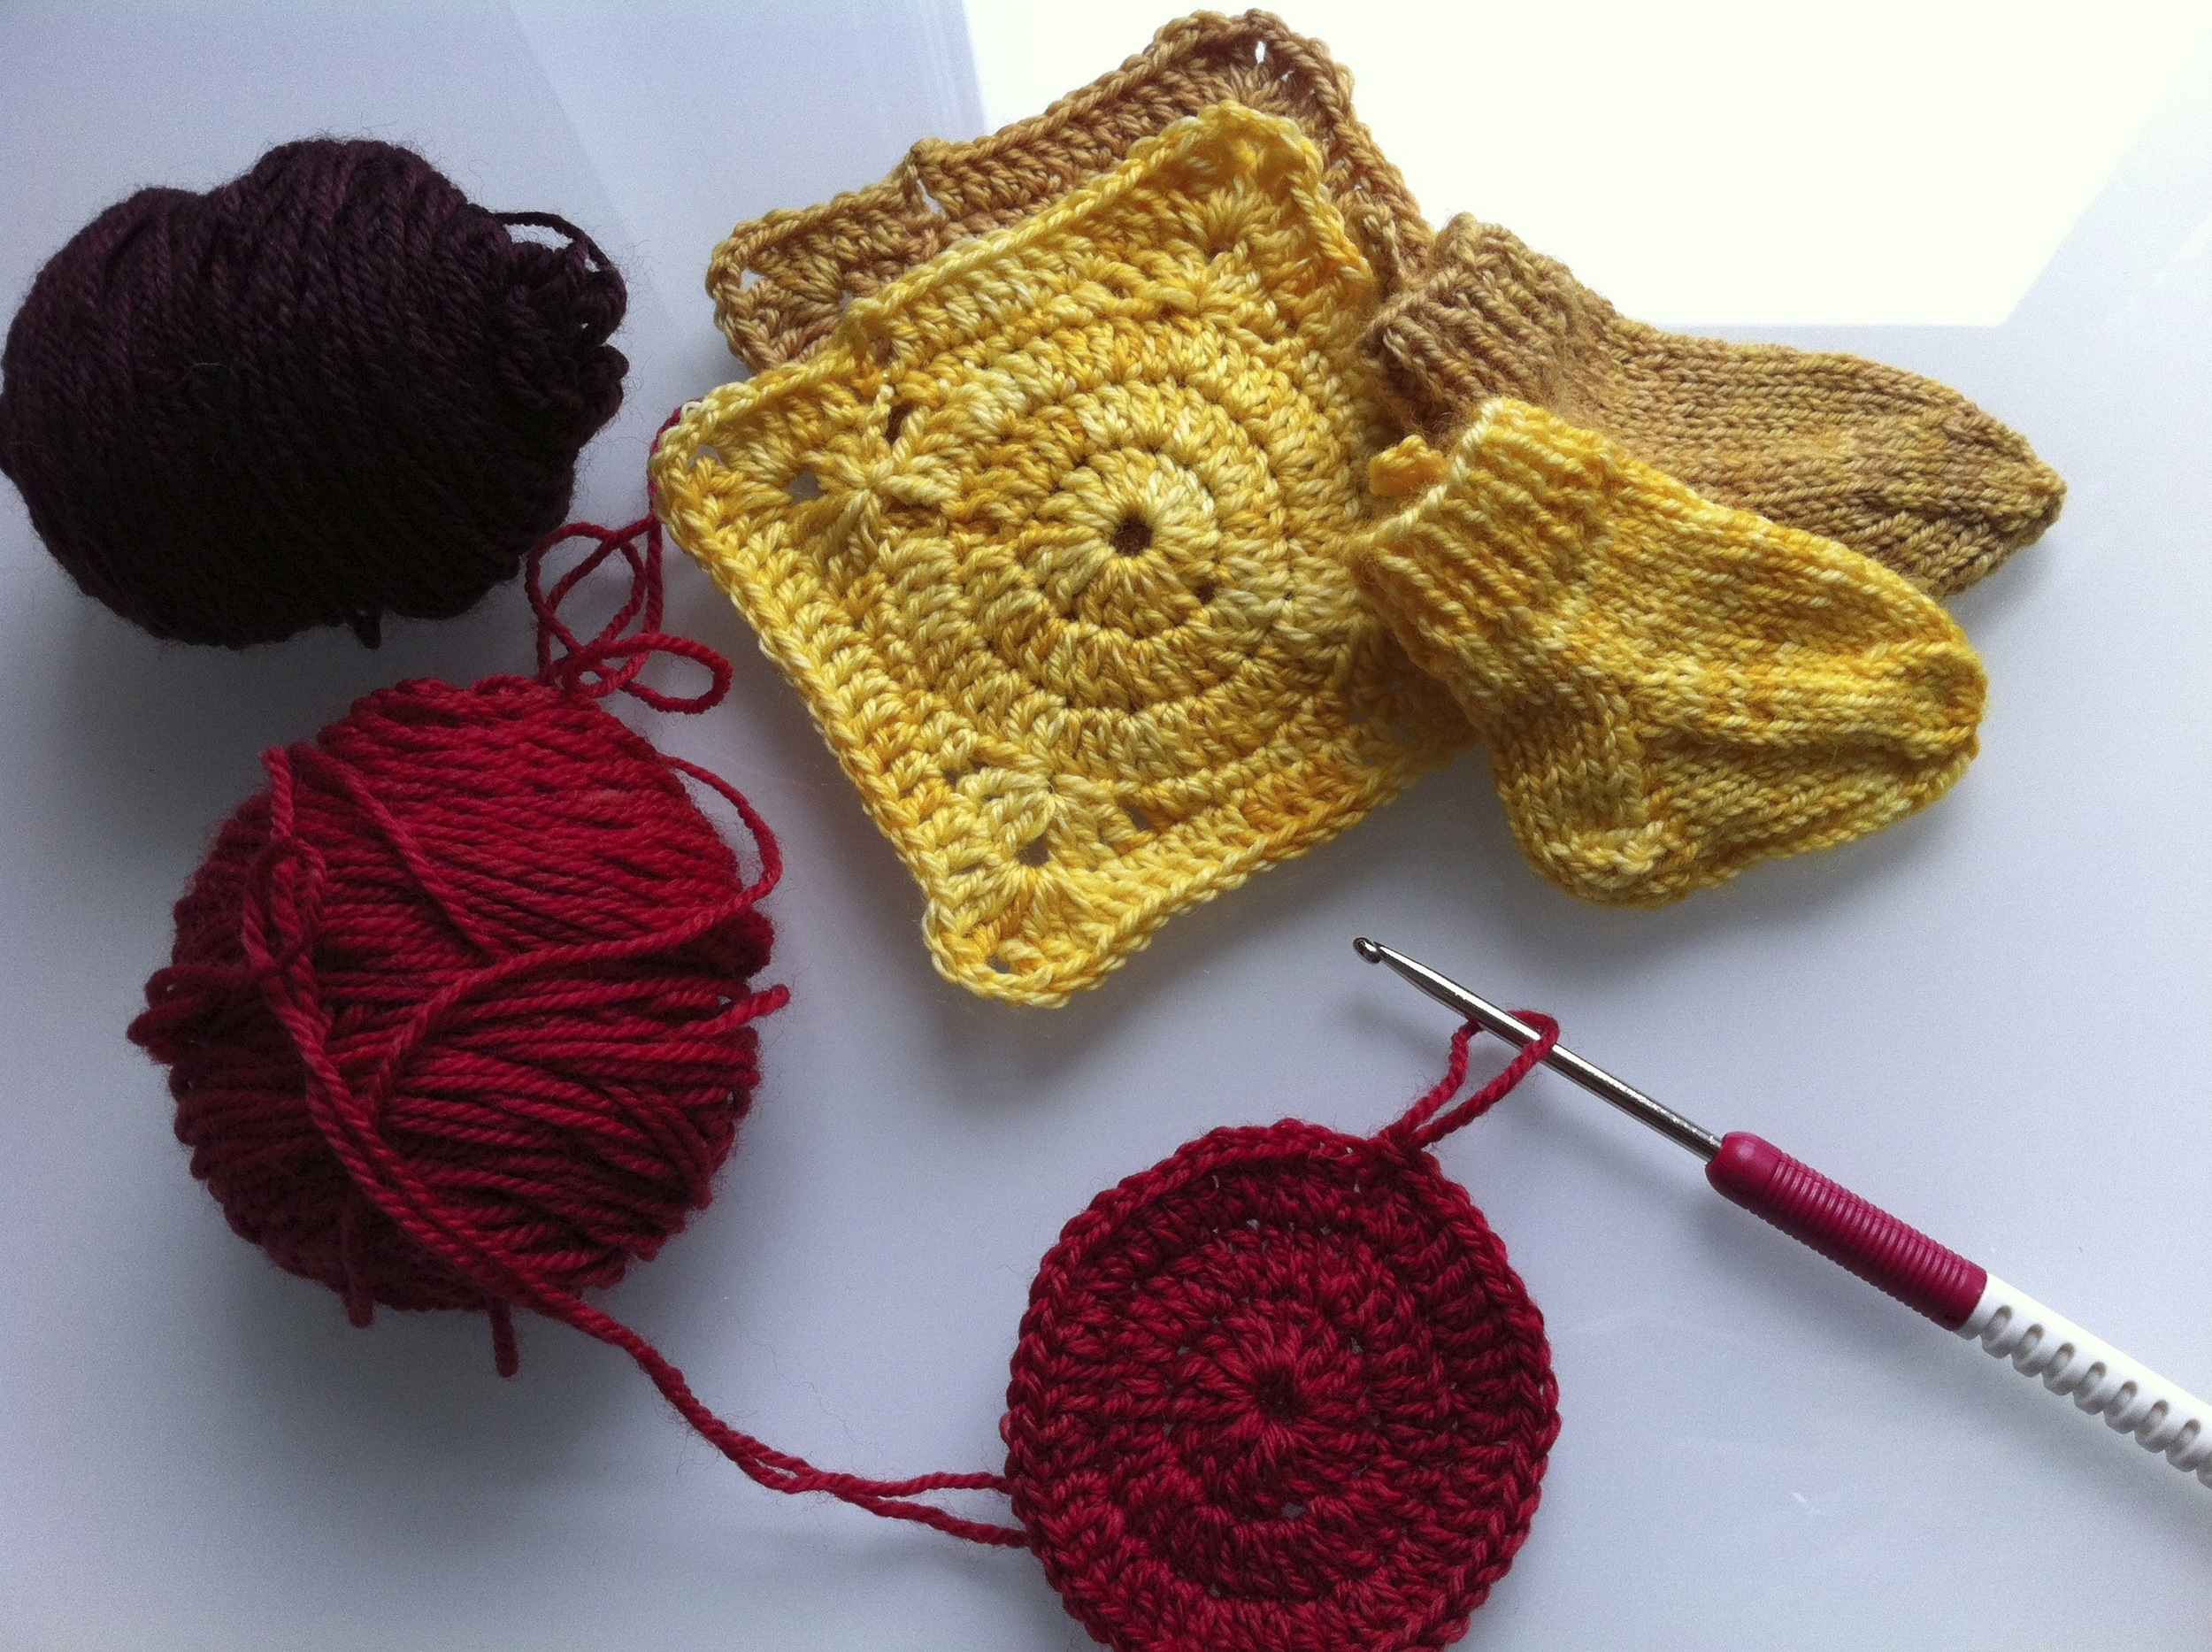 Kate Atherley's  Training Sock  and the crochet motif for  Bear's Rainbow Blanket  from Purl Soho.